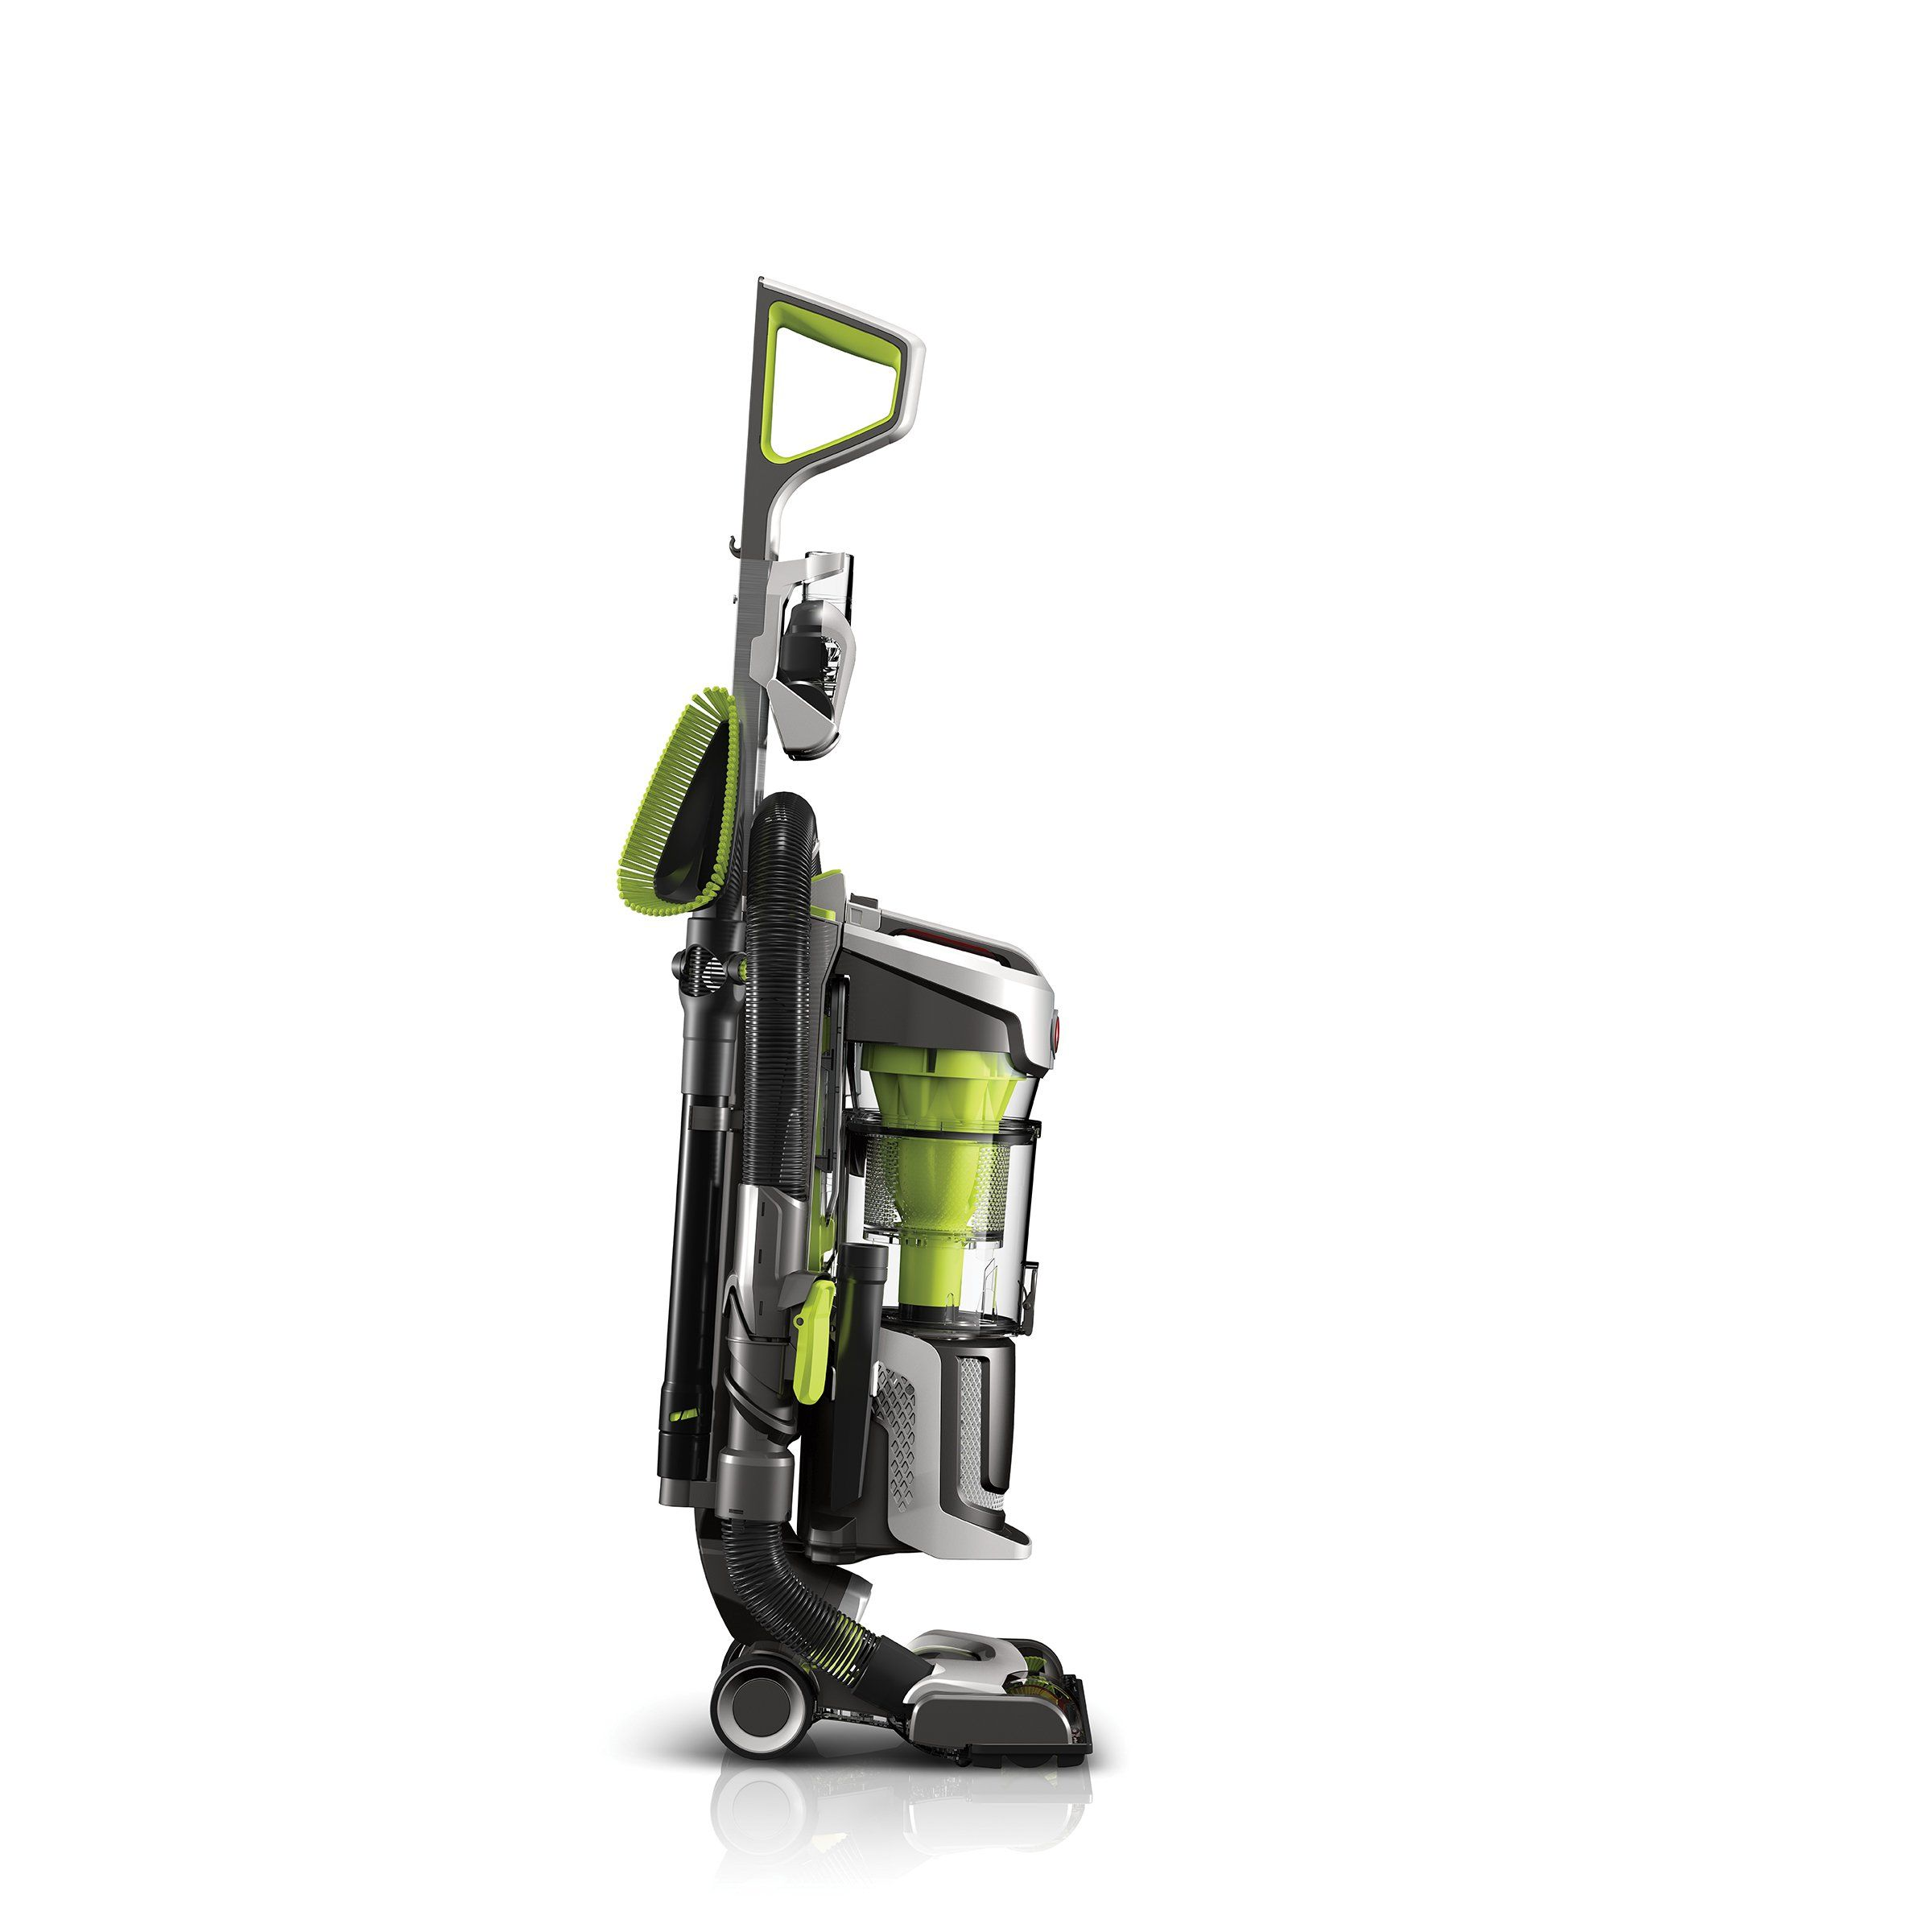 Hoover Vacuum Cleaner Air Lift Deluxe Bagless Corded